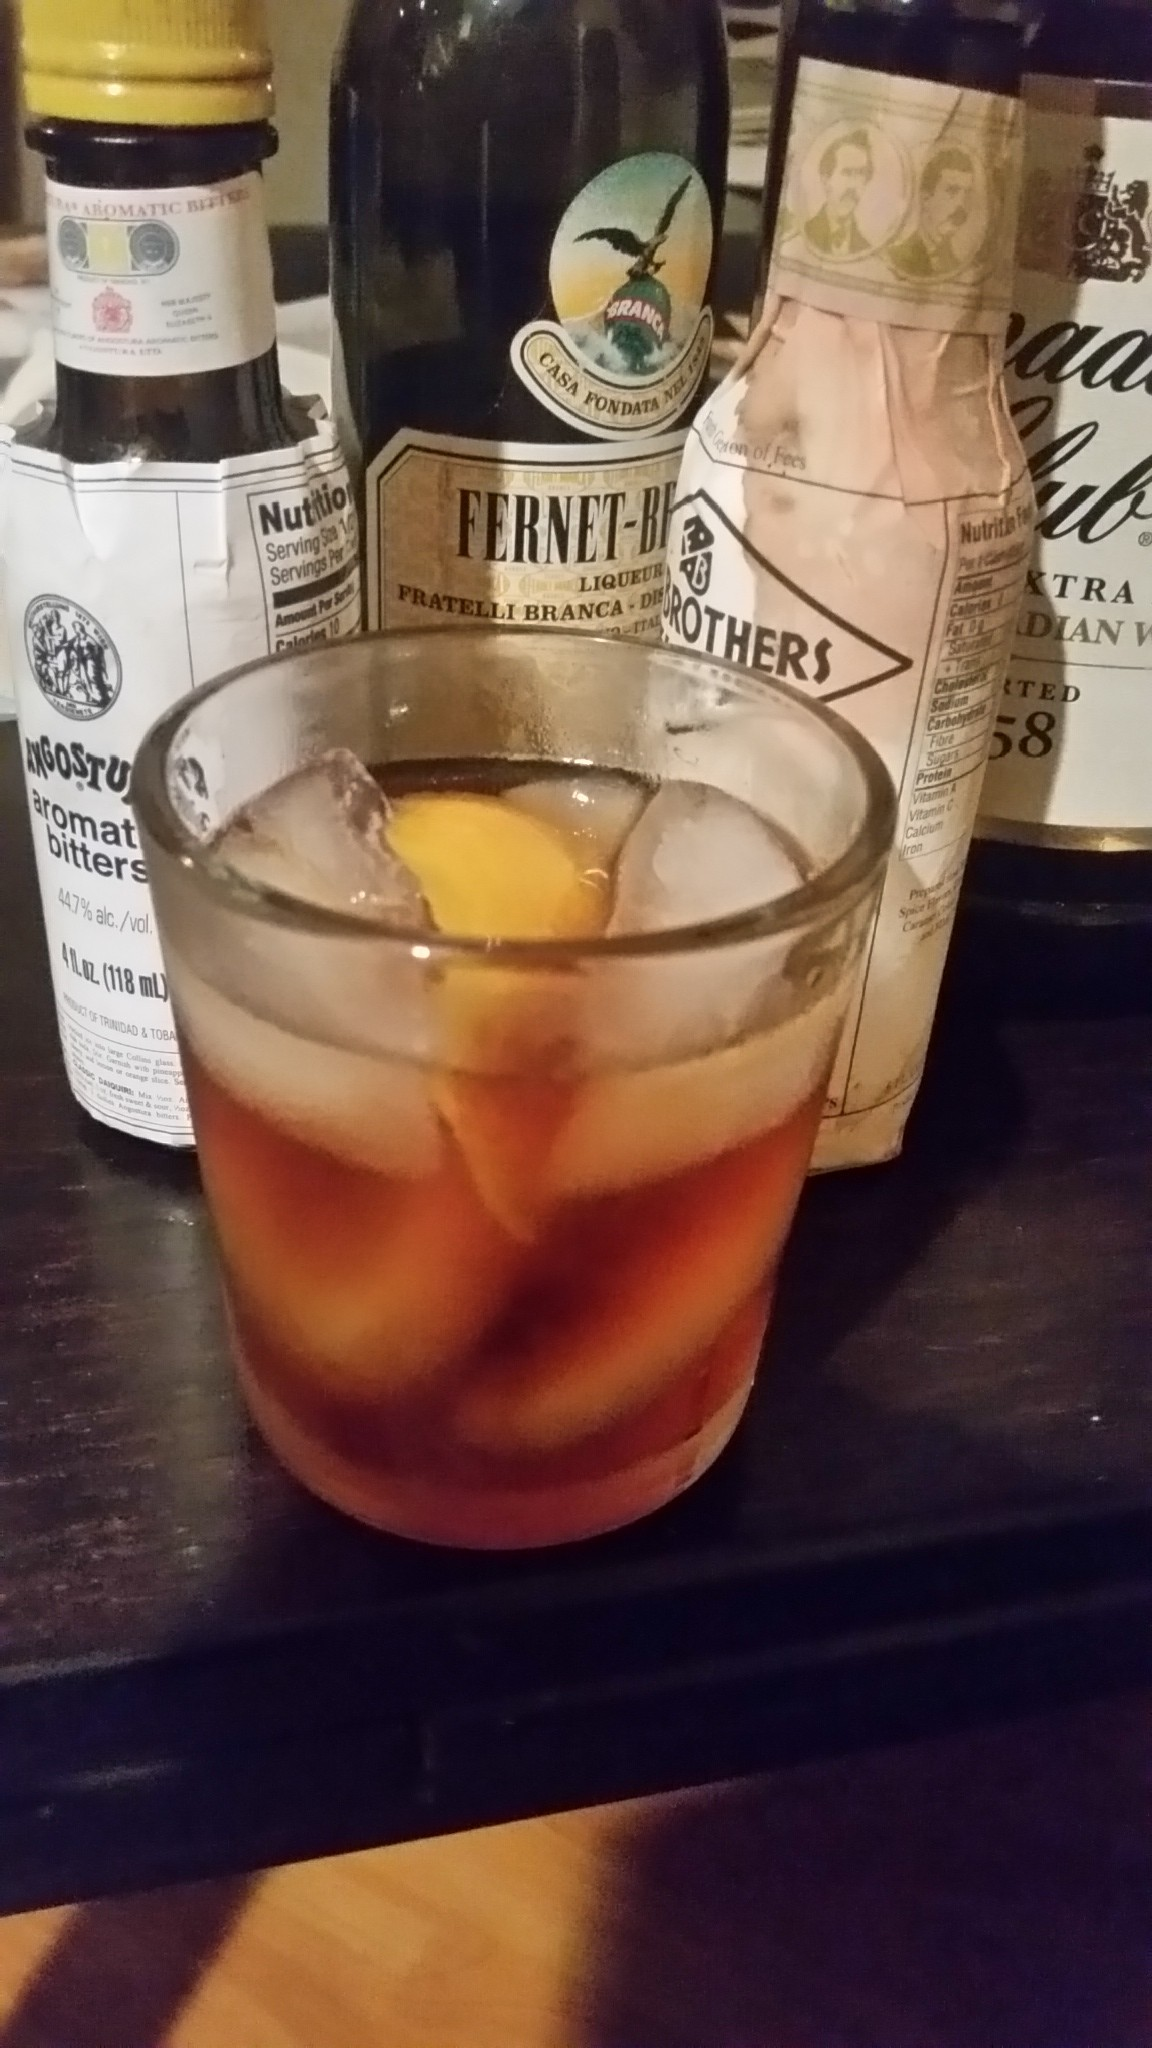 The Toronto Cocktail.